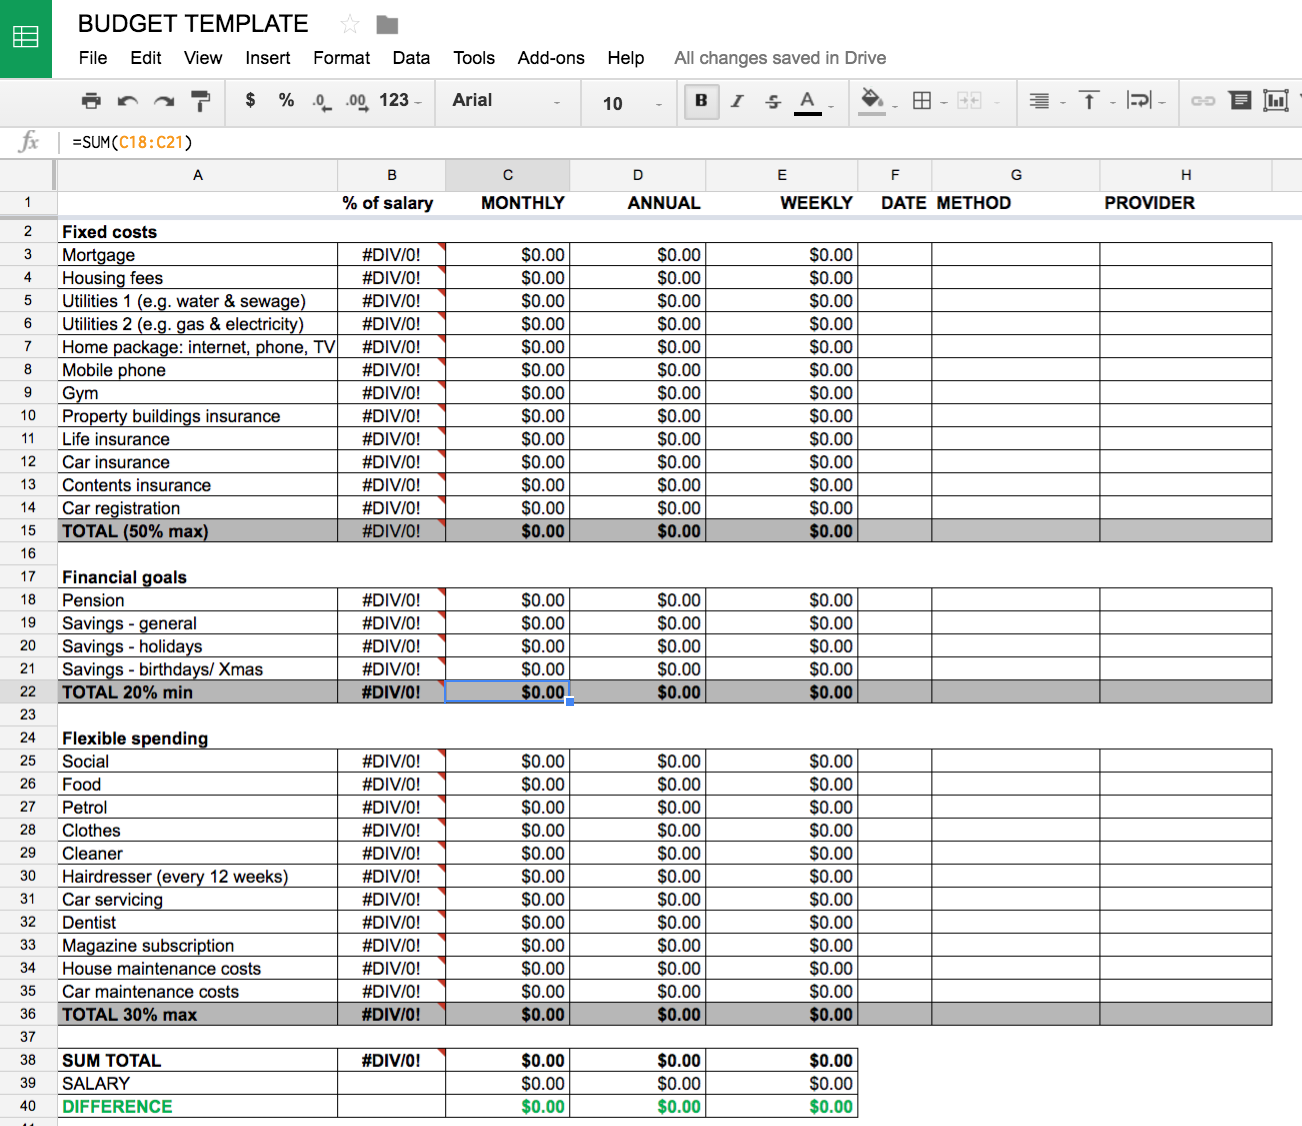 My budget template in Google Docs